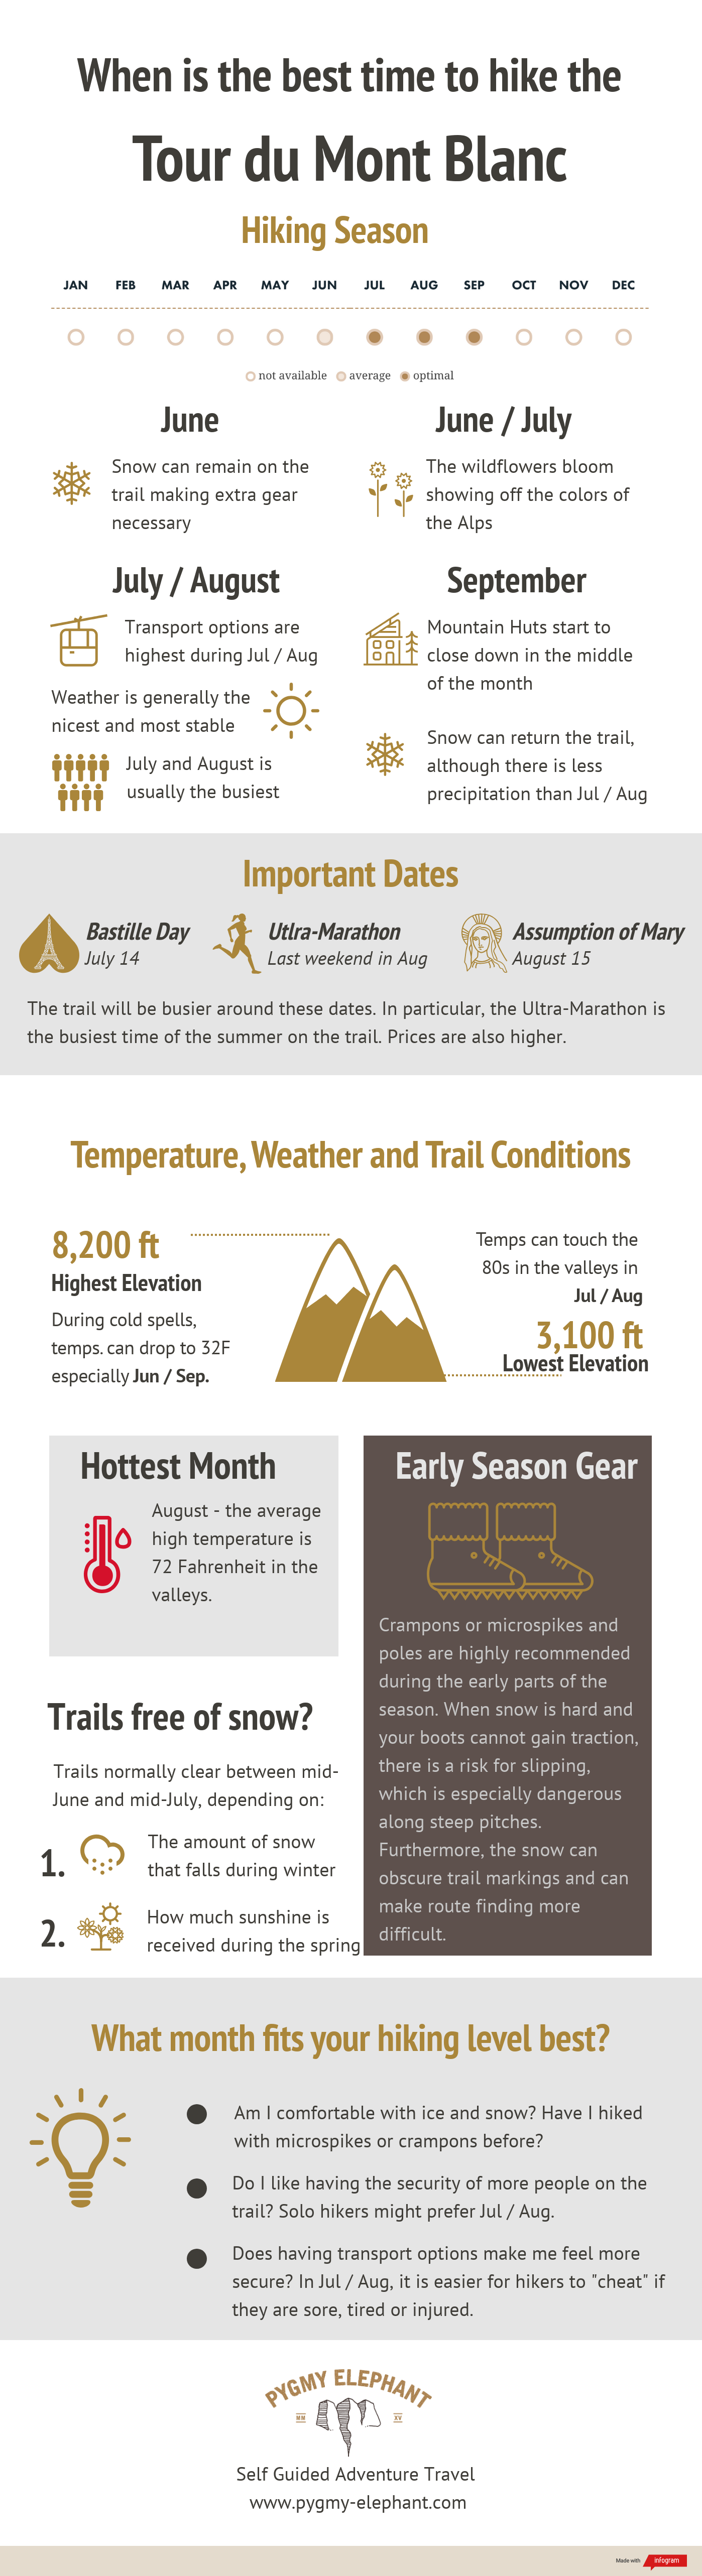 Best Time to Hike the TMB Infographic